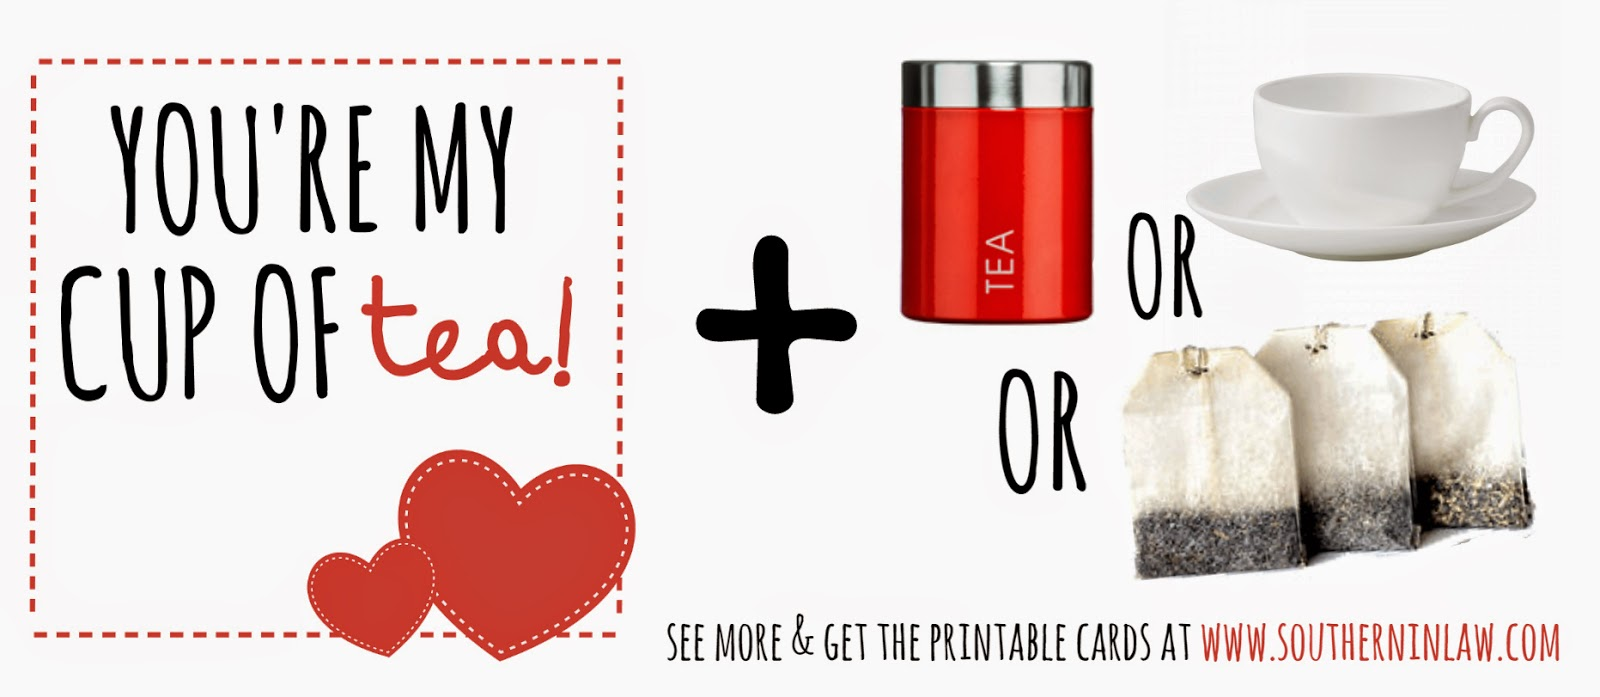 You're my cup of tea - valentines gift idea for tea lovers - Punny Valentines Gift Ideas Free Printable Valentines Cards